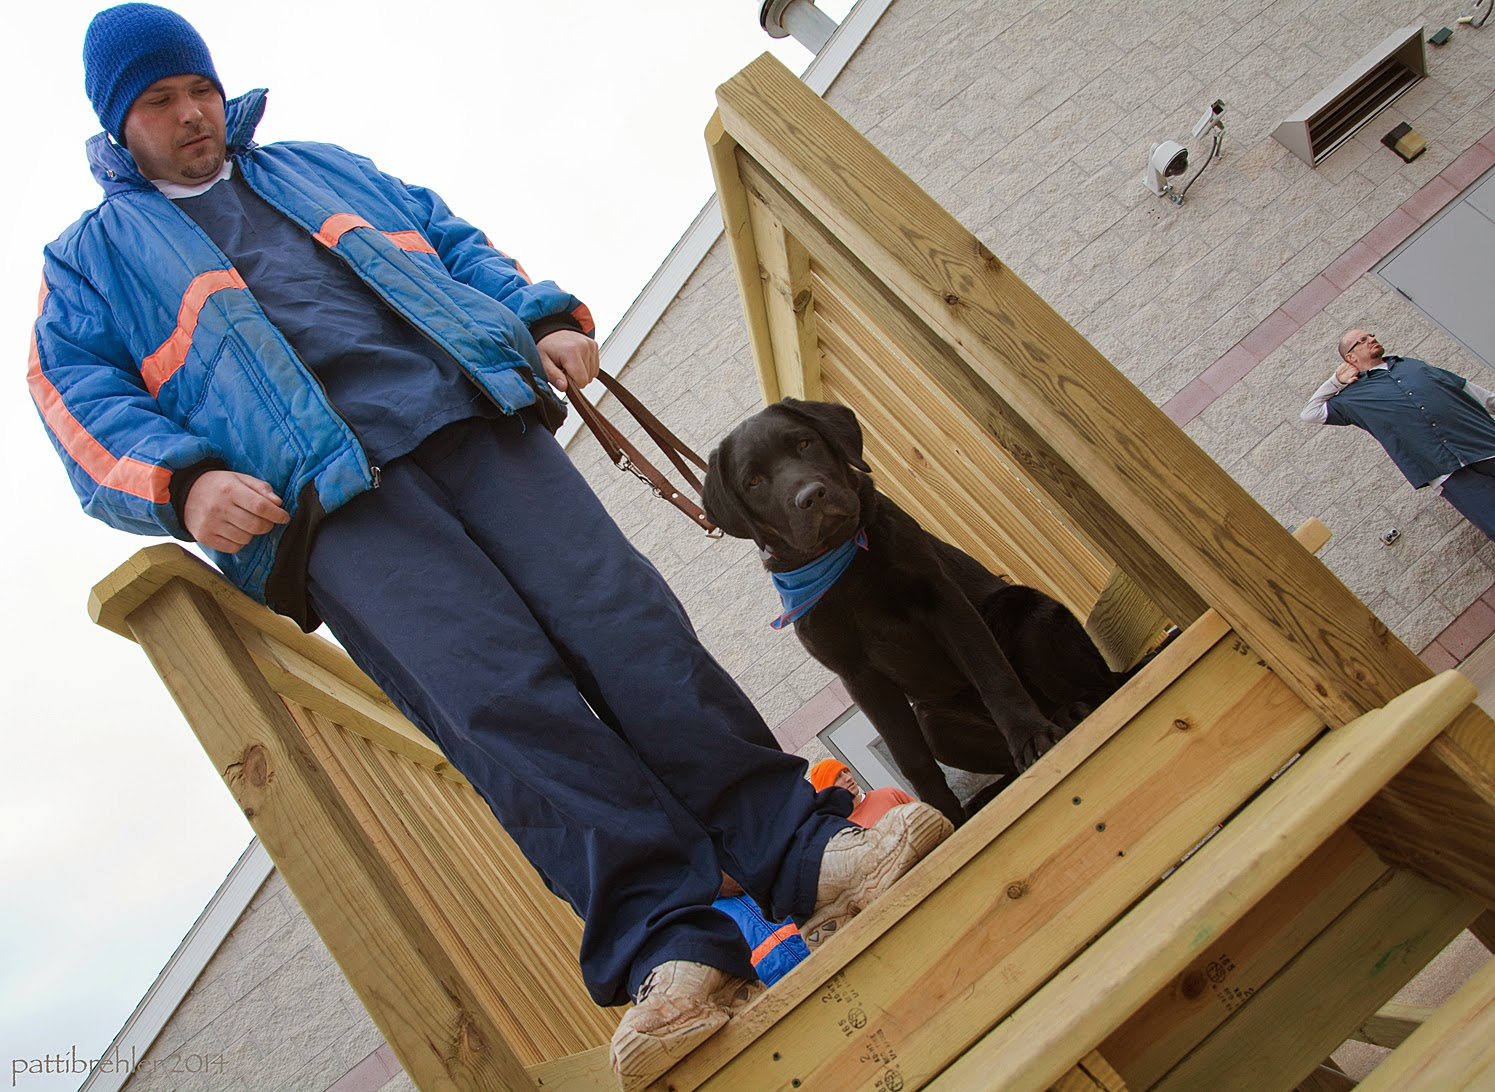 Taken from an angle from below, a man dressed in the blue prison uniform with a blue stocking cap stands at the top of the wooden stairs. He is holding the leash of a black lab puppy with his left hand. The puppy is sitting on his left side looking at the camera. The man is looking down at the puppy. The puppy is wearing the blue Futurel Leader Dog bandana. There is another man far in the background on the right dressed in blue, in front of a white brick building.